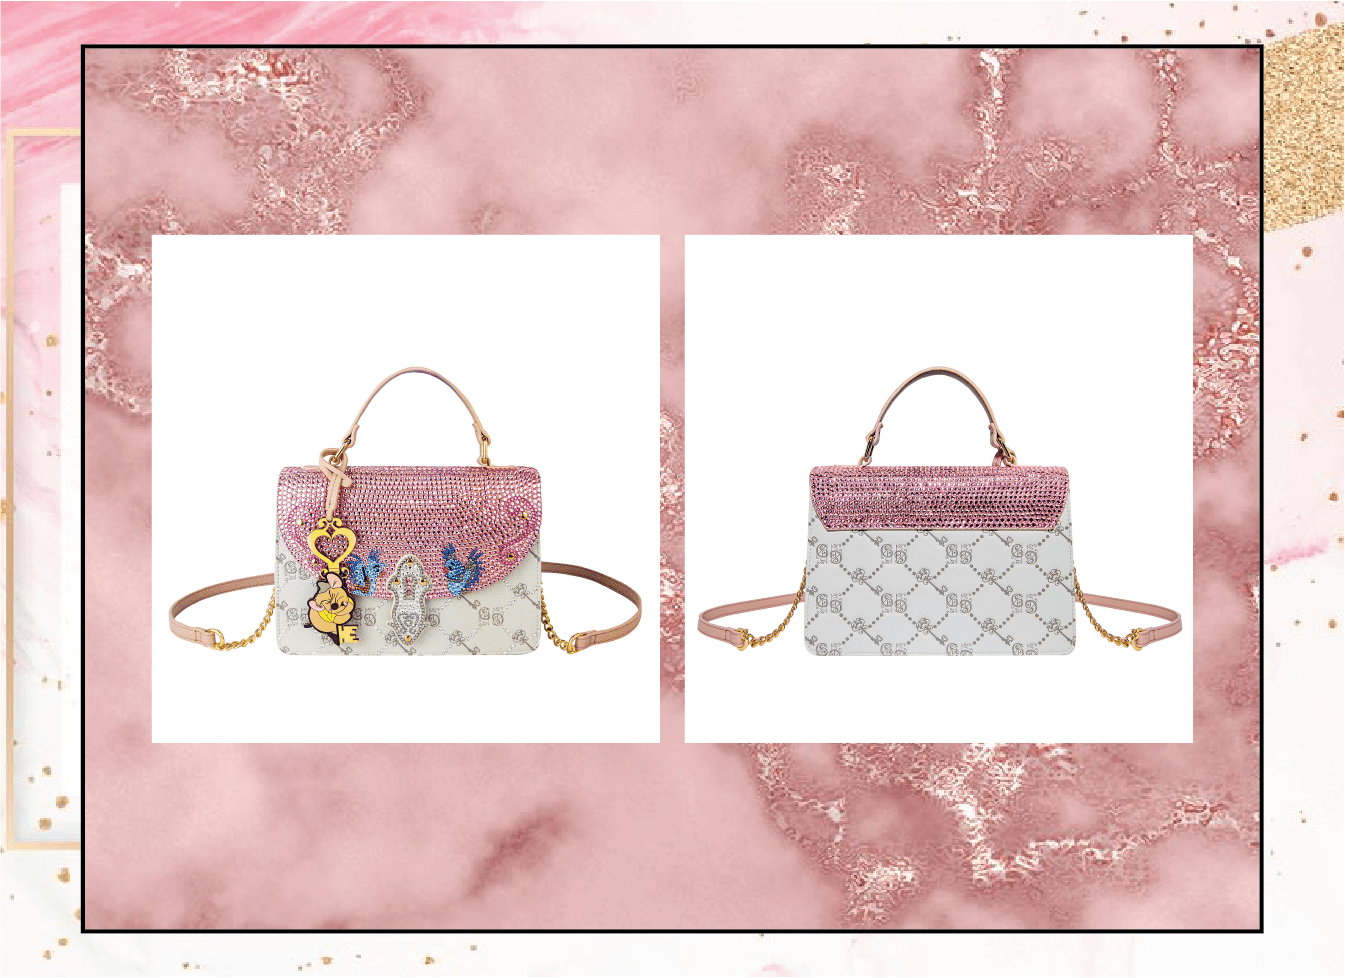 Introducing the New Crystalized Disney Cinderella Collections by Danielle Nicole 4